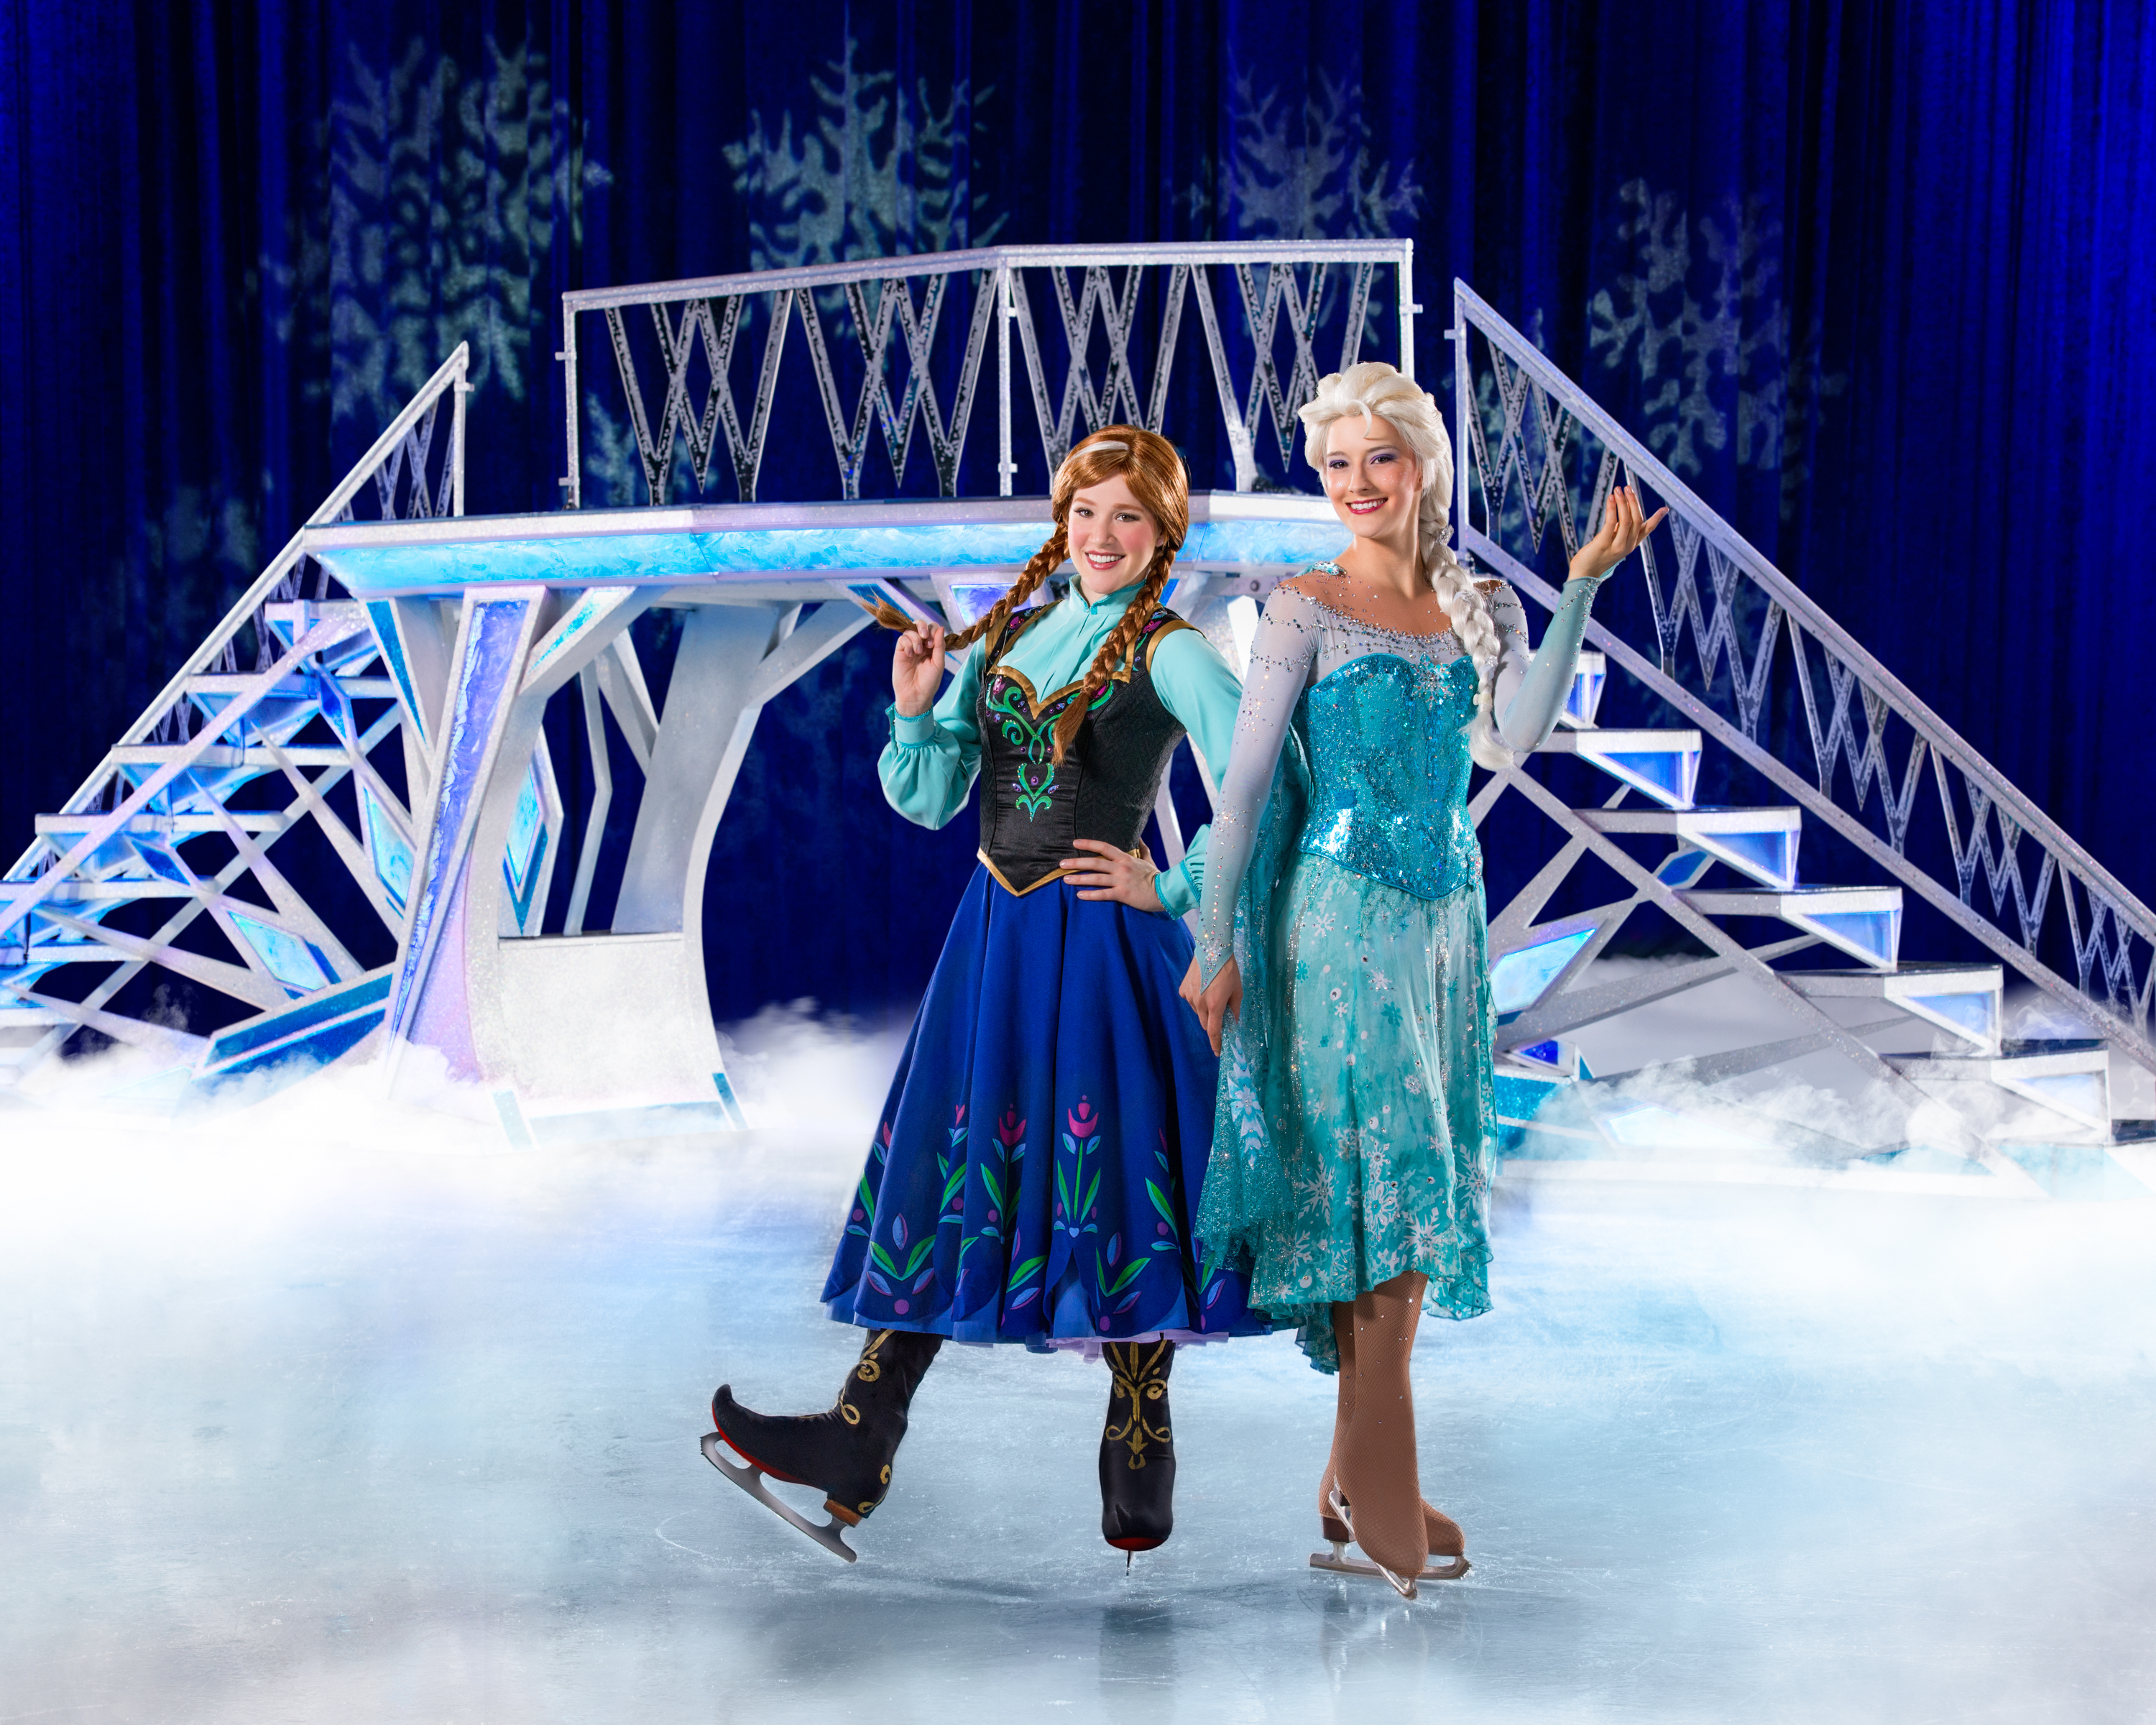 Upcoming Disney On Ice Worlds Of Enchantment Tour Dates & Theatre Events